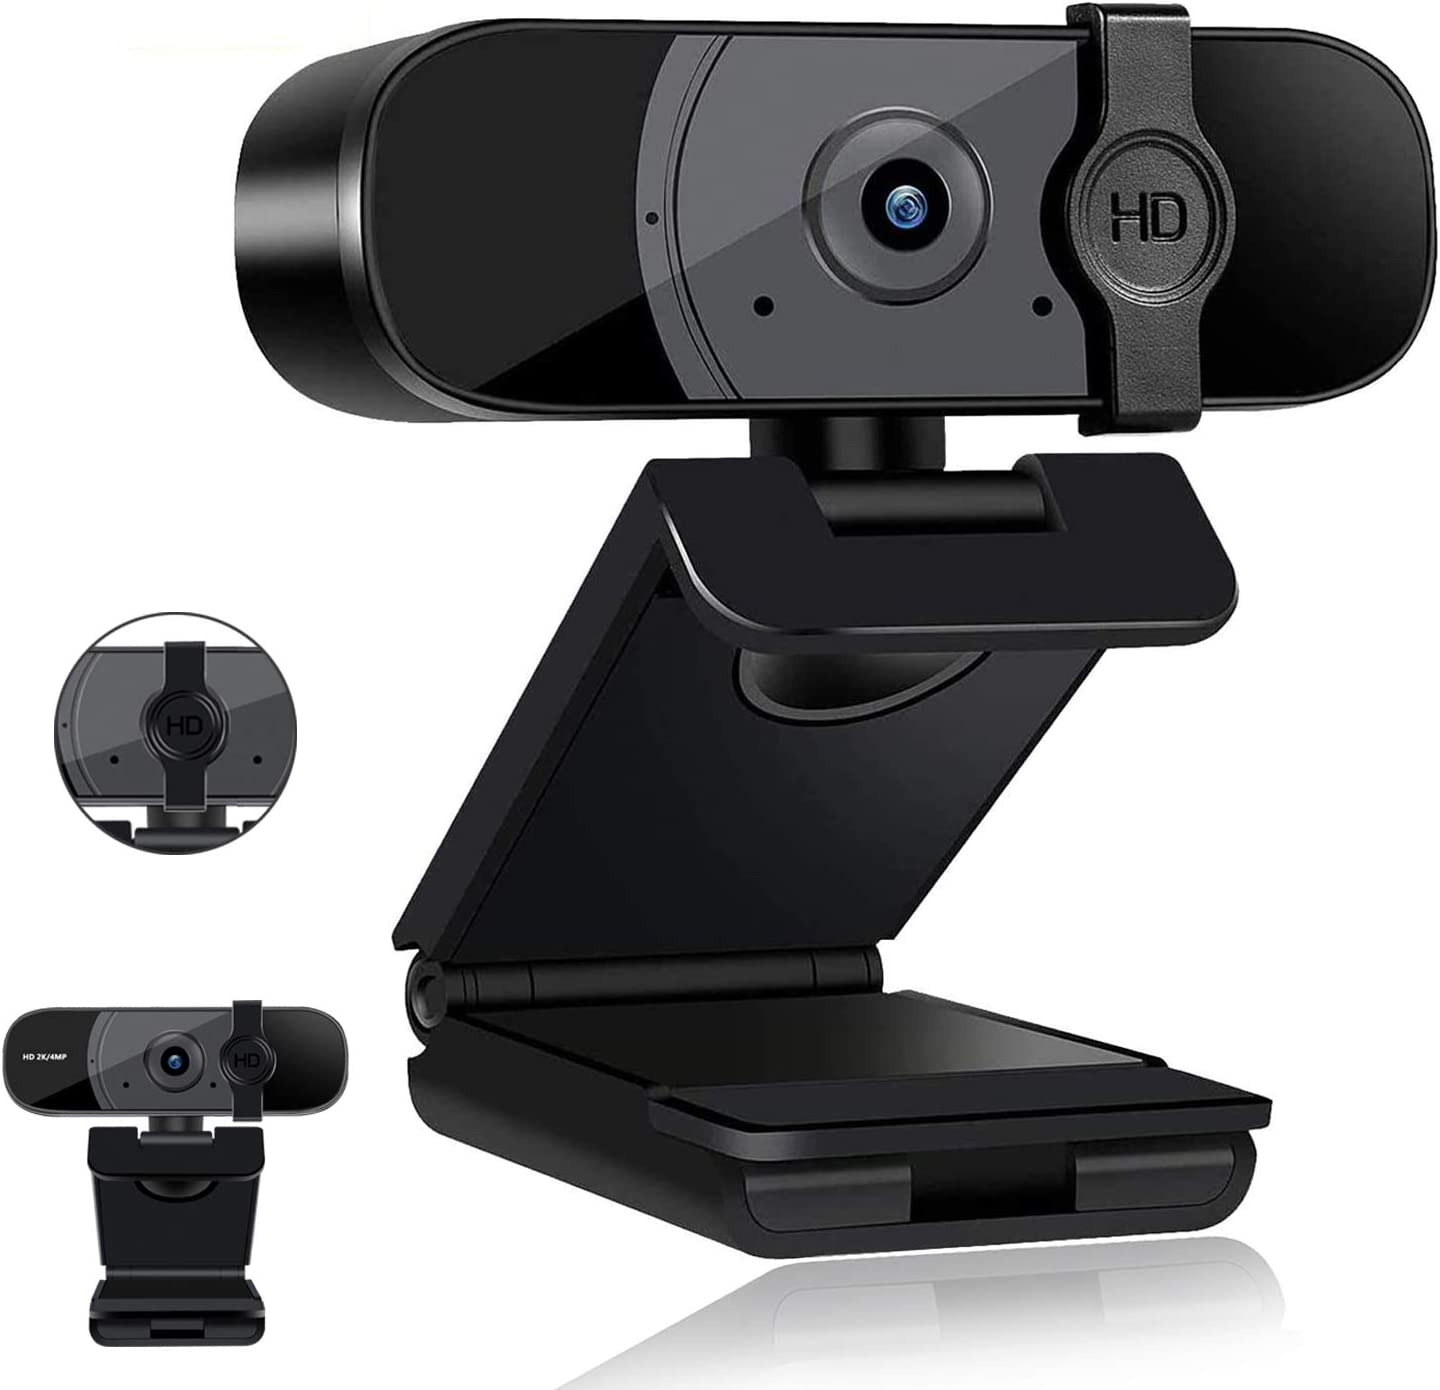 Webcam with Microphone, Camera Computer,2K HD Web Camera with Privacy Cover, USB 3.0 Plug and Play Streaming Webcam with Flexible Rotable Wide Angle Webcam for PC Laptop YouTube, Skype